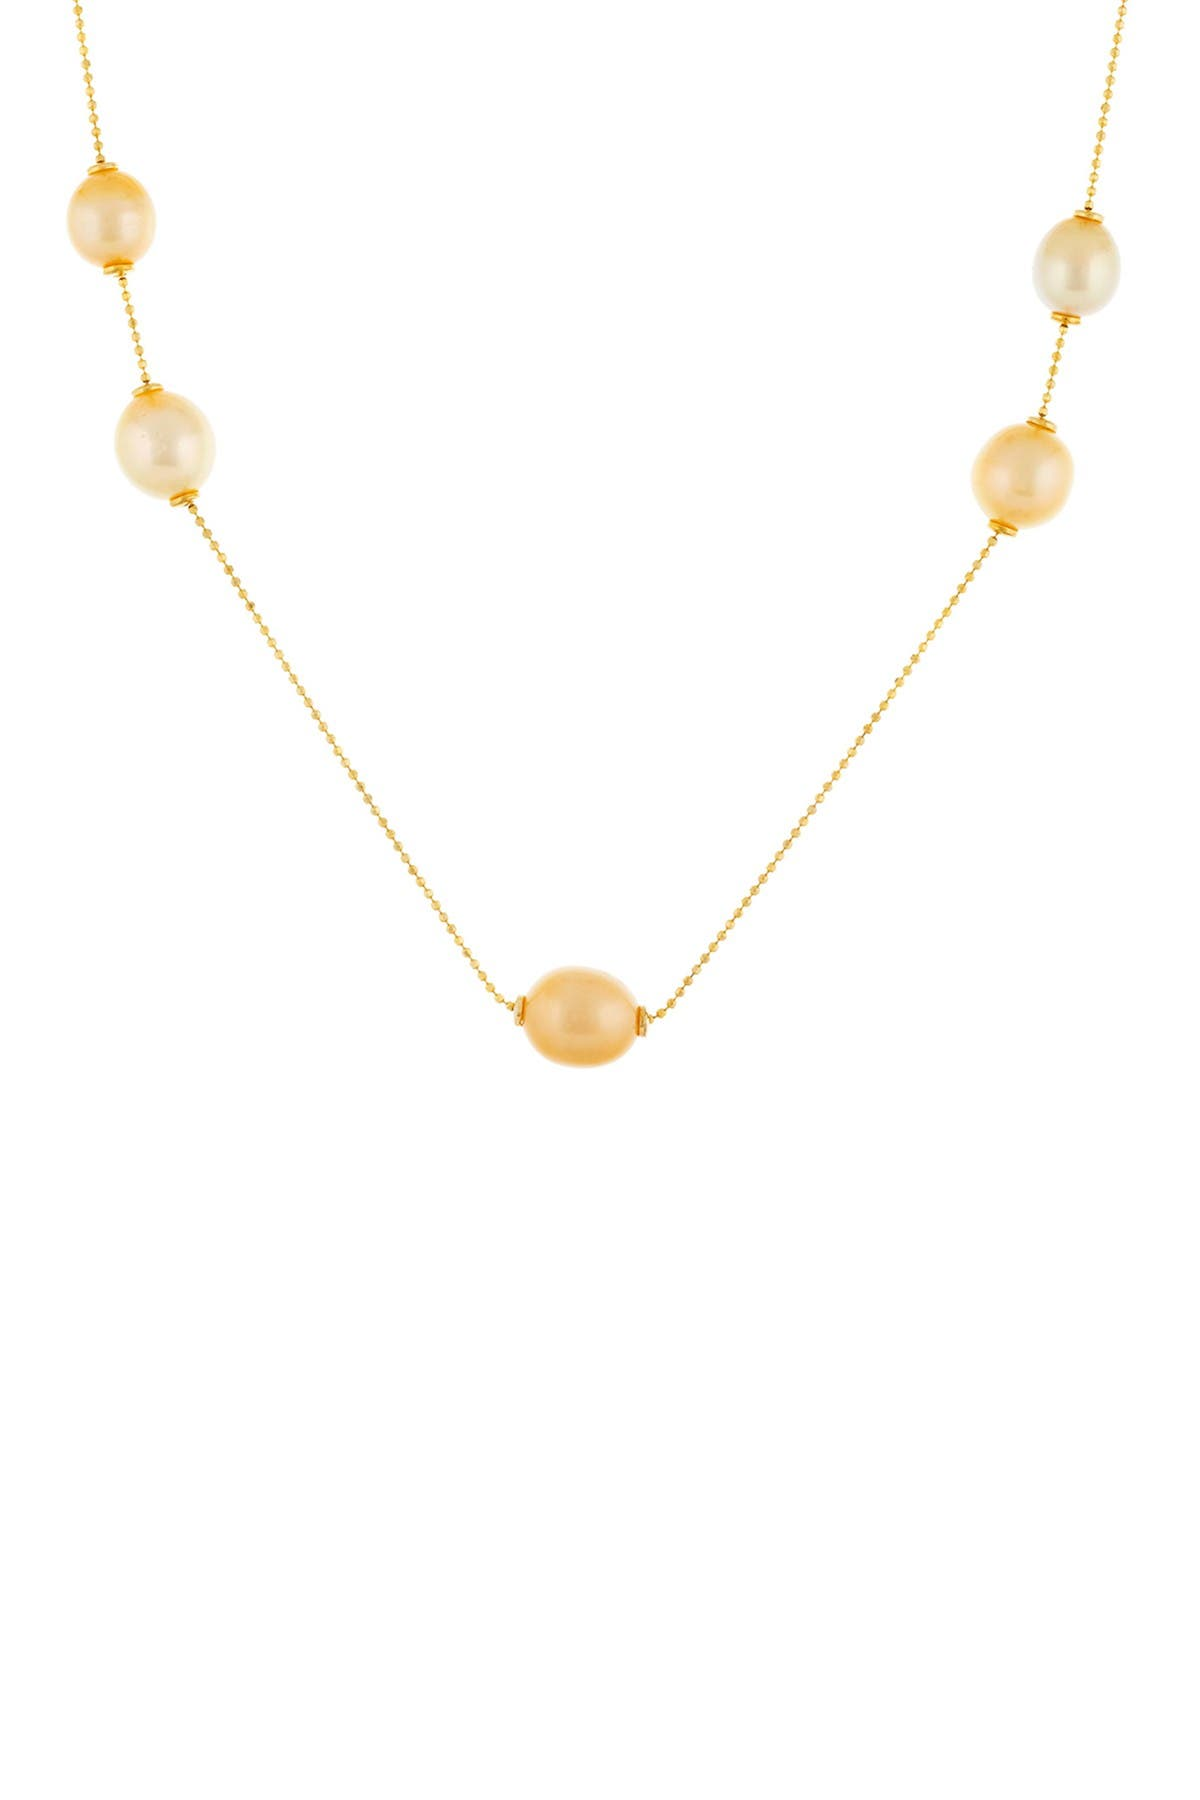 Image of Splendid Pearls Gold Plated Sterling Silver South Sea Pearl Necklace